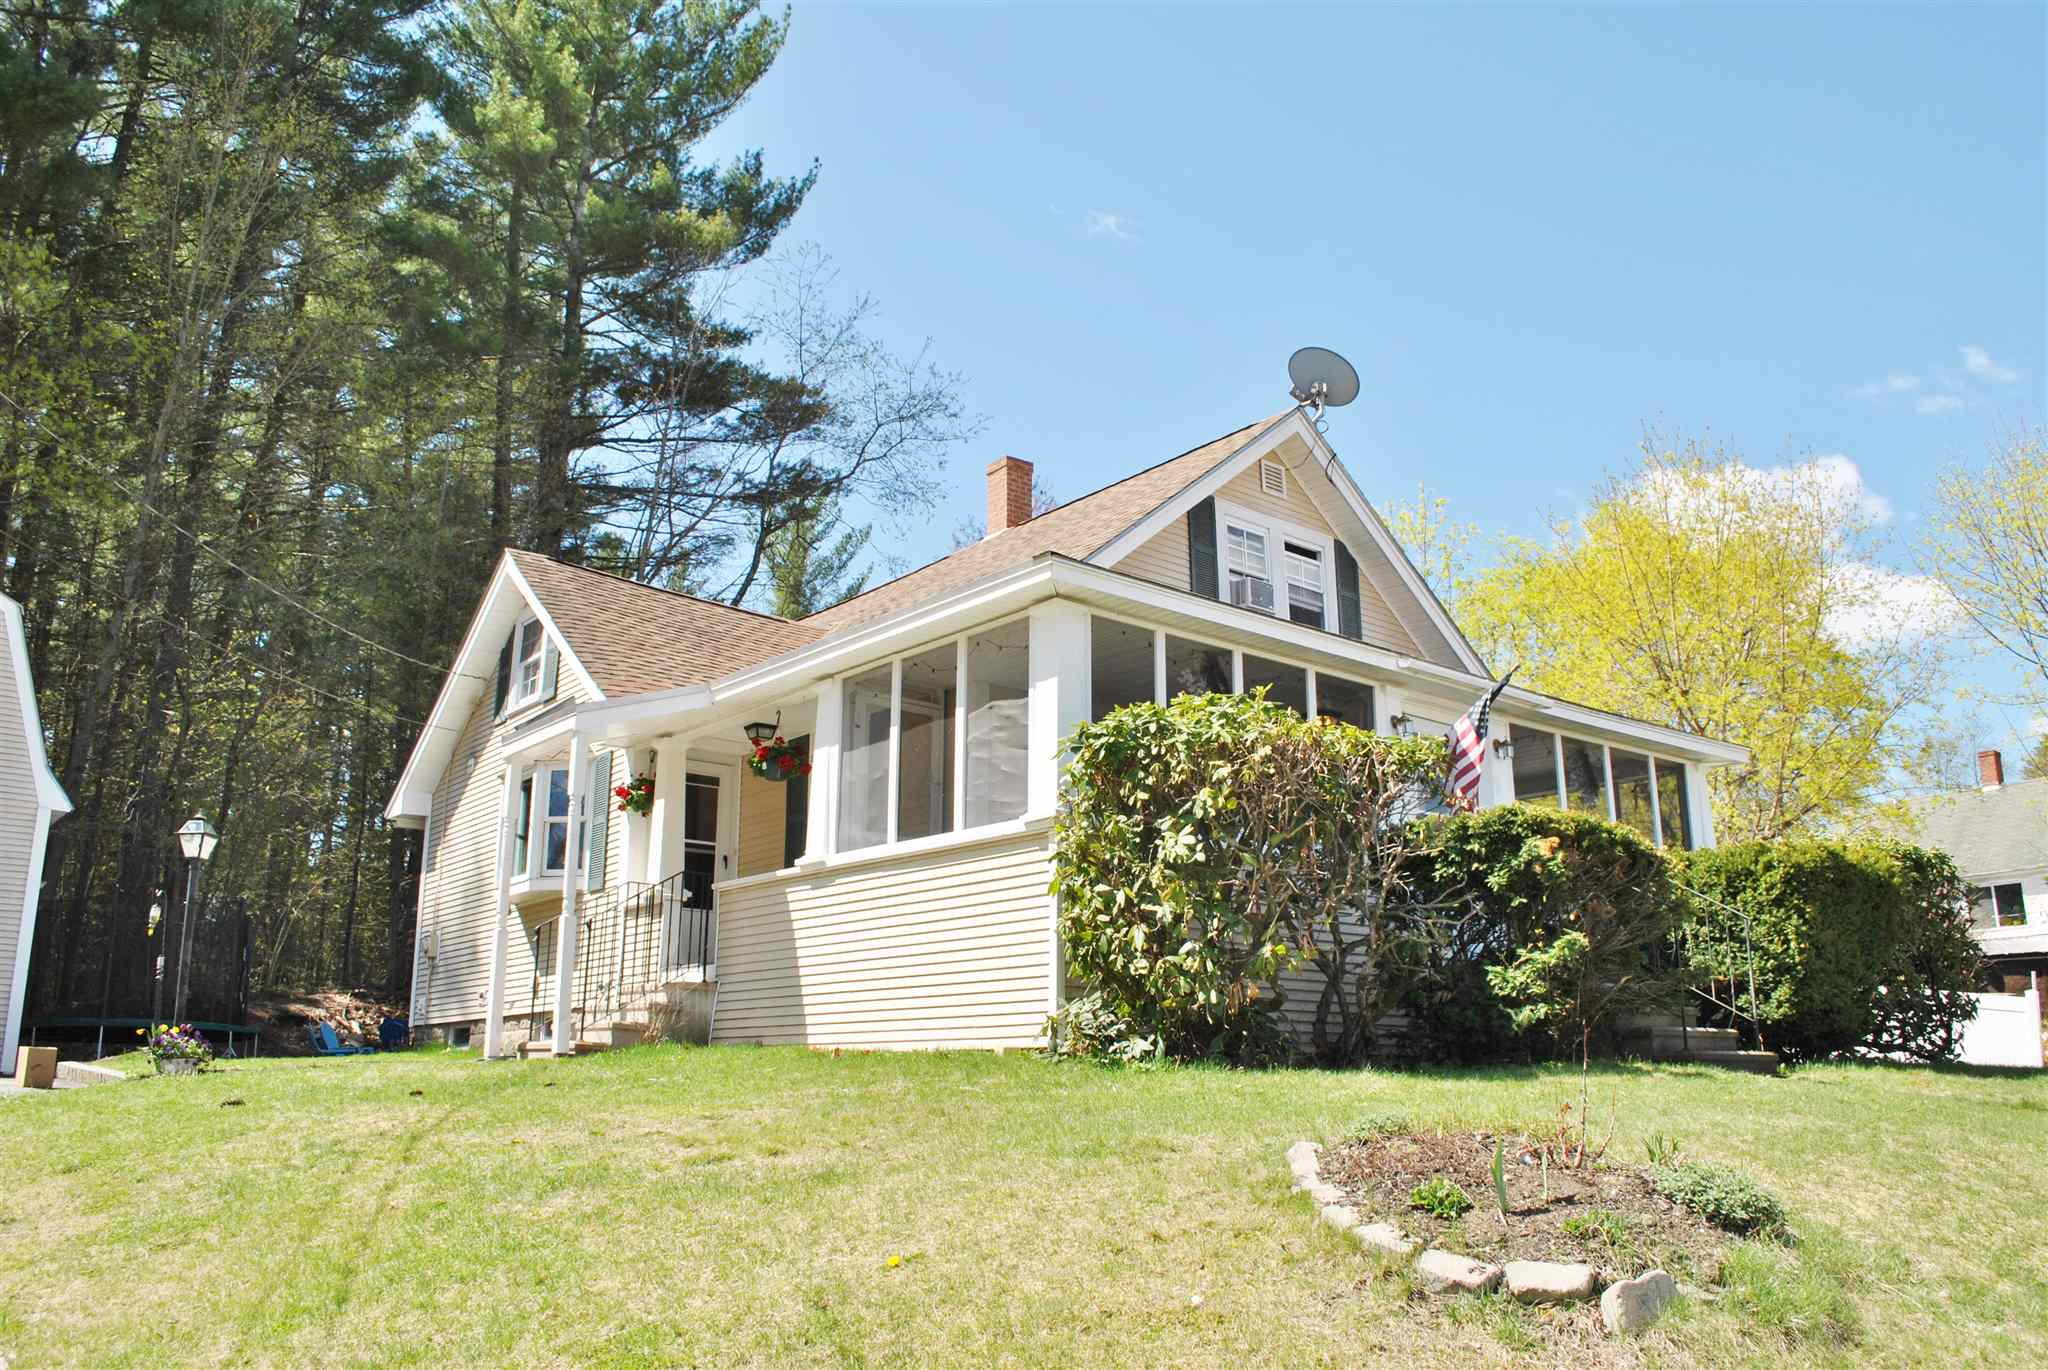 MLS 4792635: 6 Smith Street, Milford NH